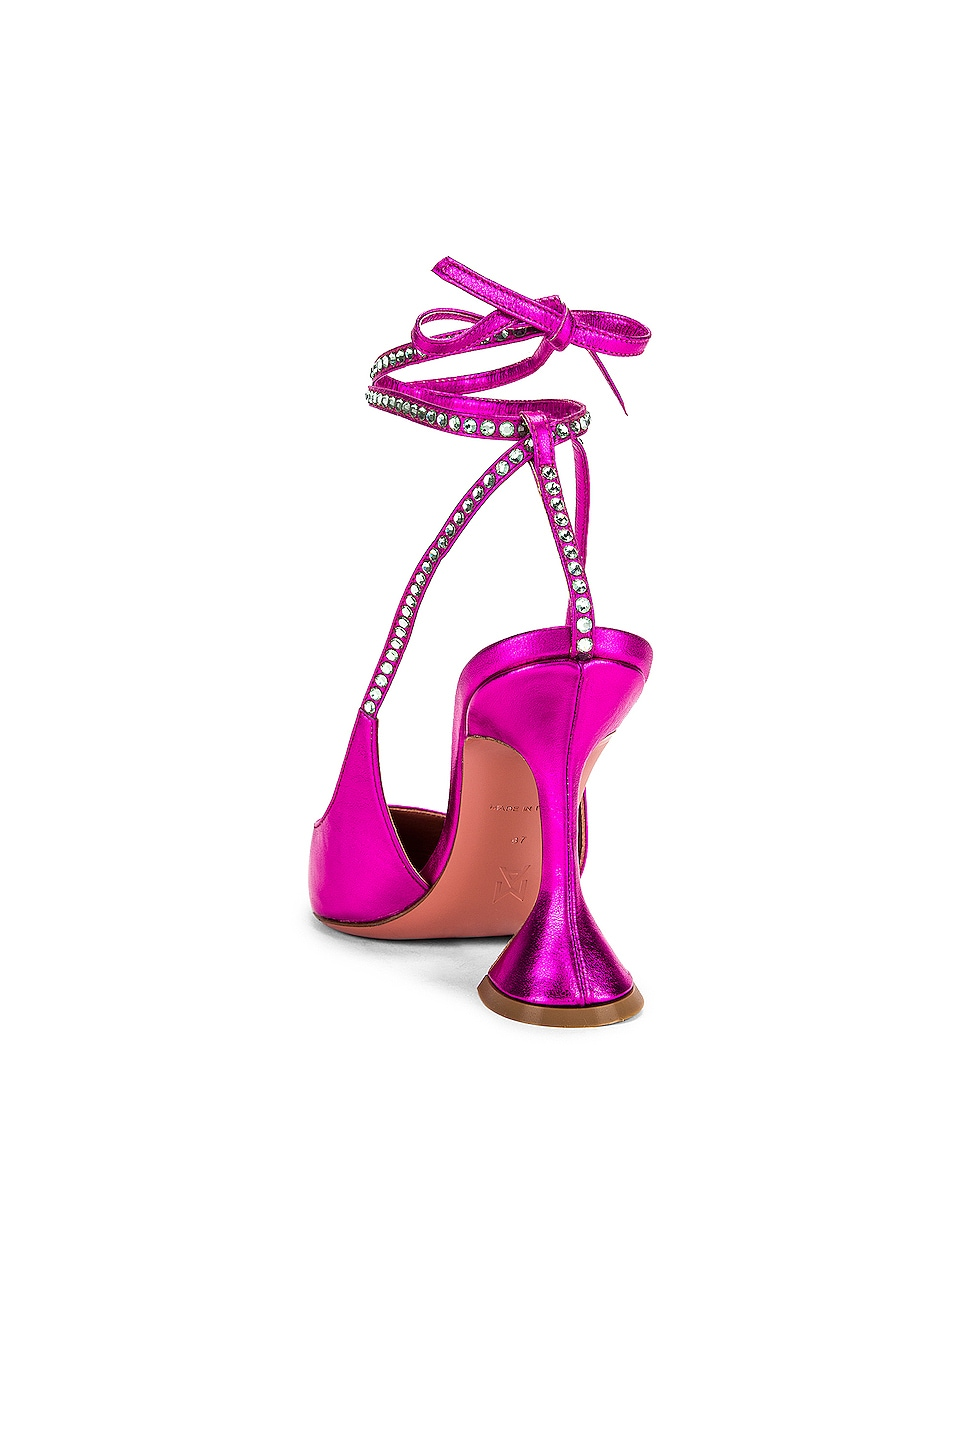 Image 3 of AMINA MUADDI Karma Pump in Fuchsia Metal Nappa